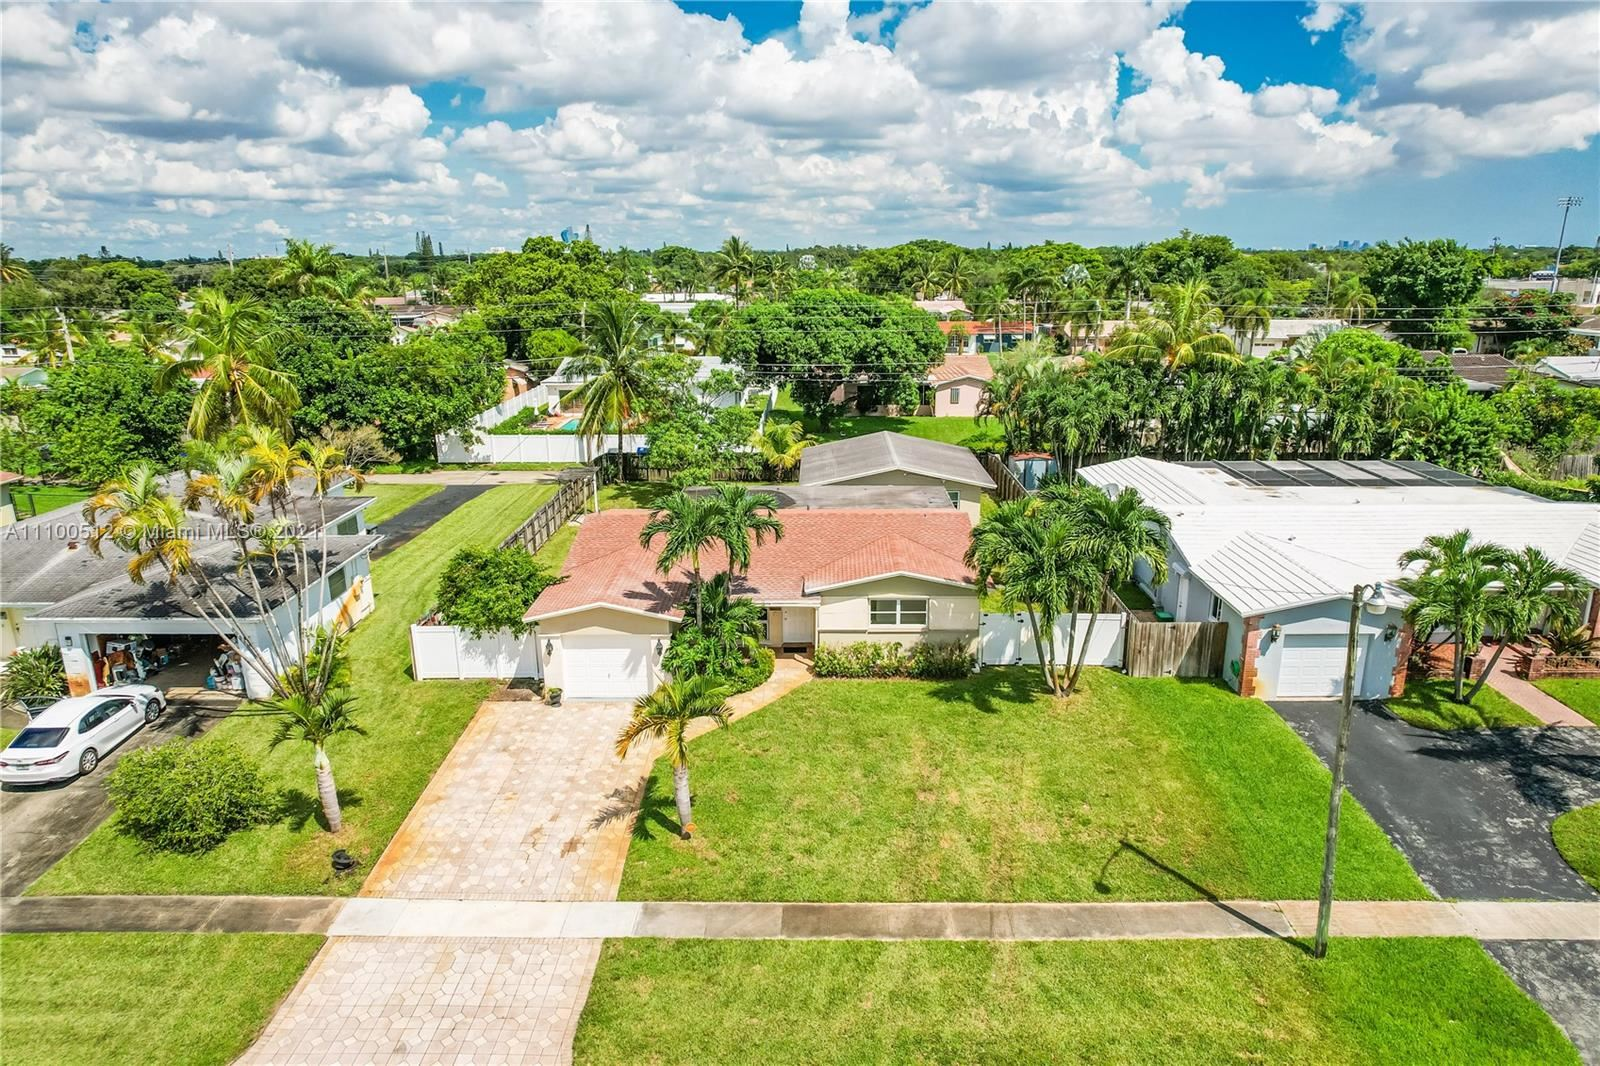 Photo of 5421 Tyler St, Hollywood, FL 33021 (MLS # A11100512)